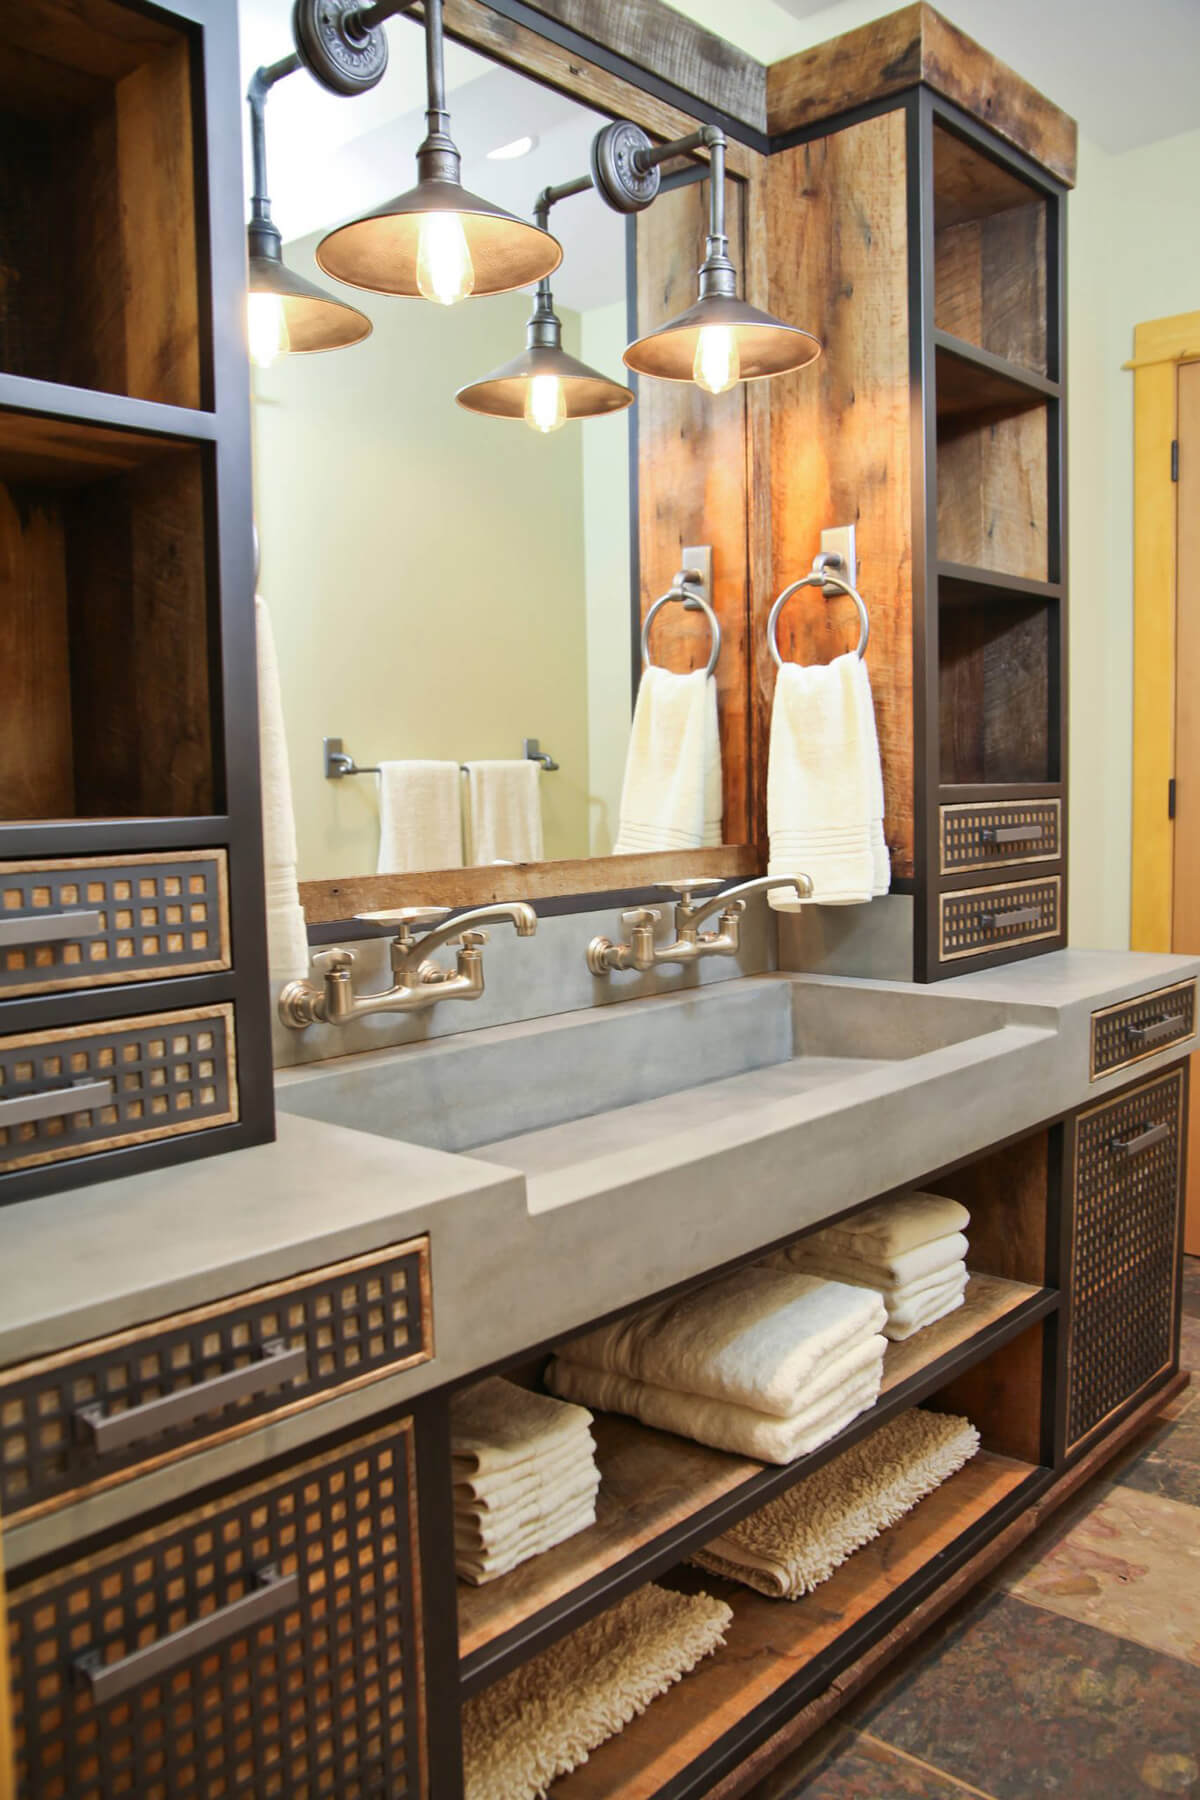 25+ Best Bathroom Sink Ideas and Designs for 2020